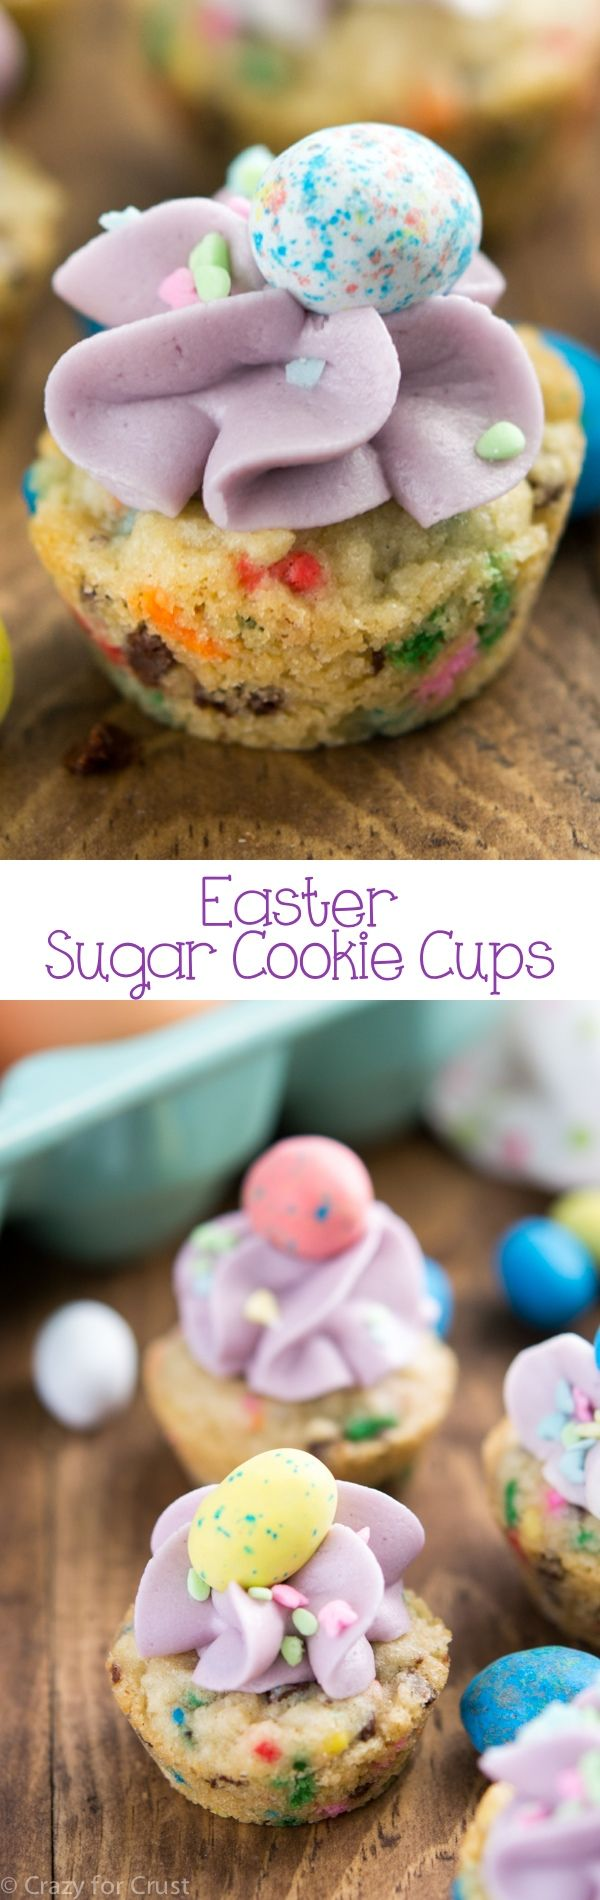 224 best easter desserts images on pinterest easter easter treats easter sugar cookie cups filled with sprinkles and topped with candy eggs an easy and negle Gallery